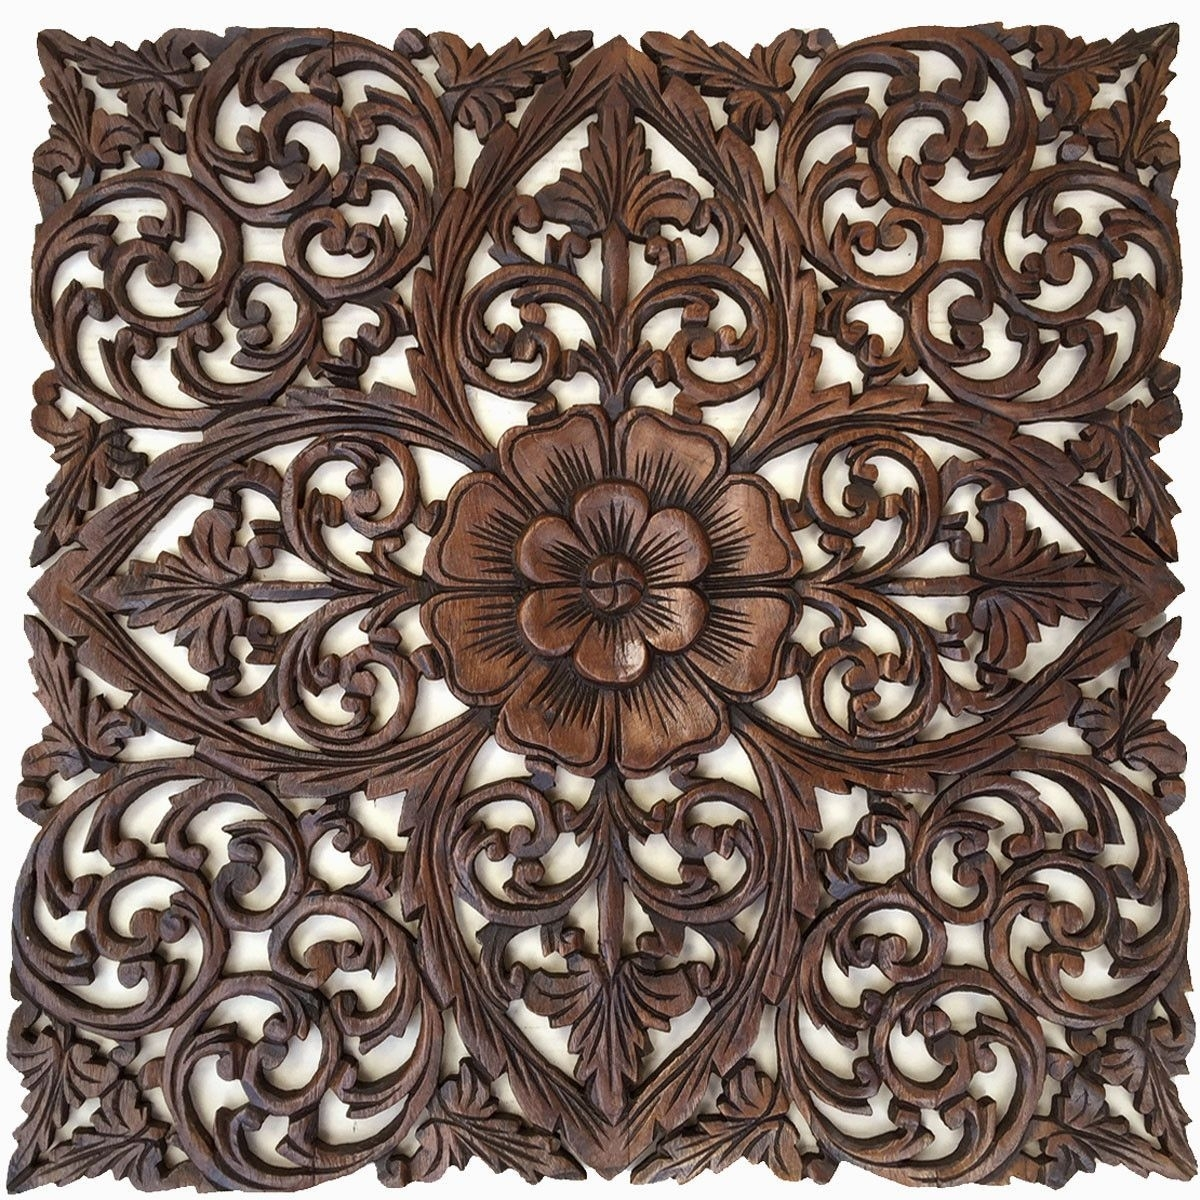 Oriental Hand Carved Wood Wall Plaques. Large Square Floral Wood with regard to Carved Wood Wall Art (Image 15 of 20)